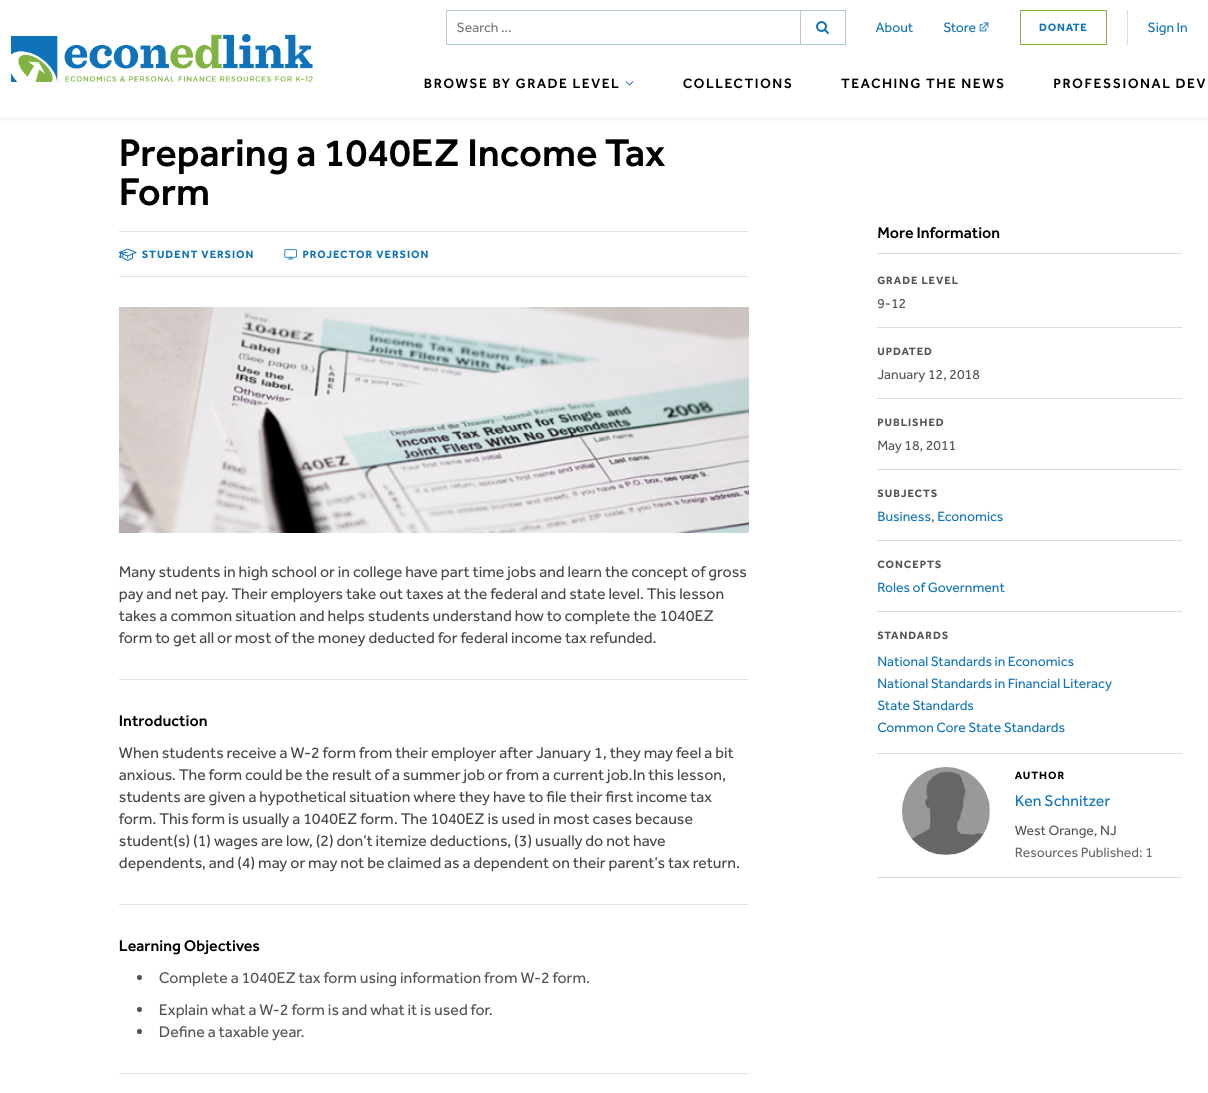 Preparing A 1040EZ Income Tax Form Lesson Plan For 9th